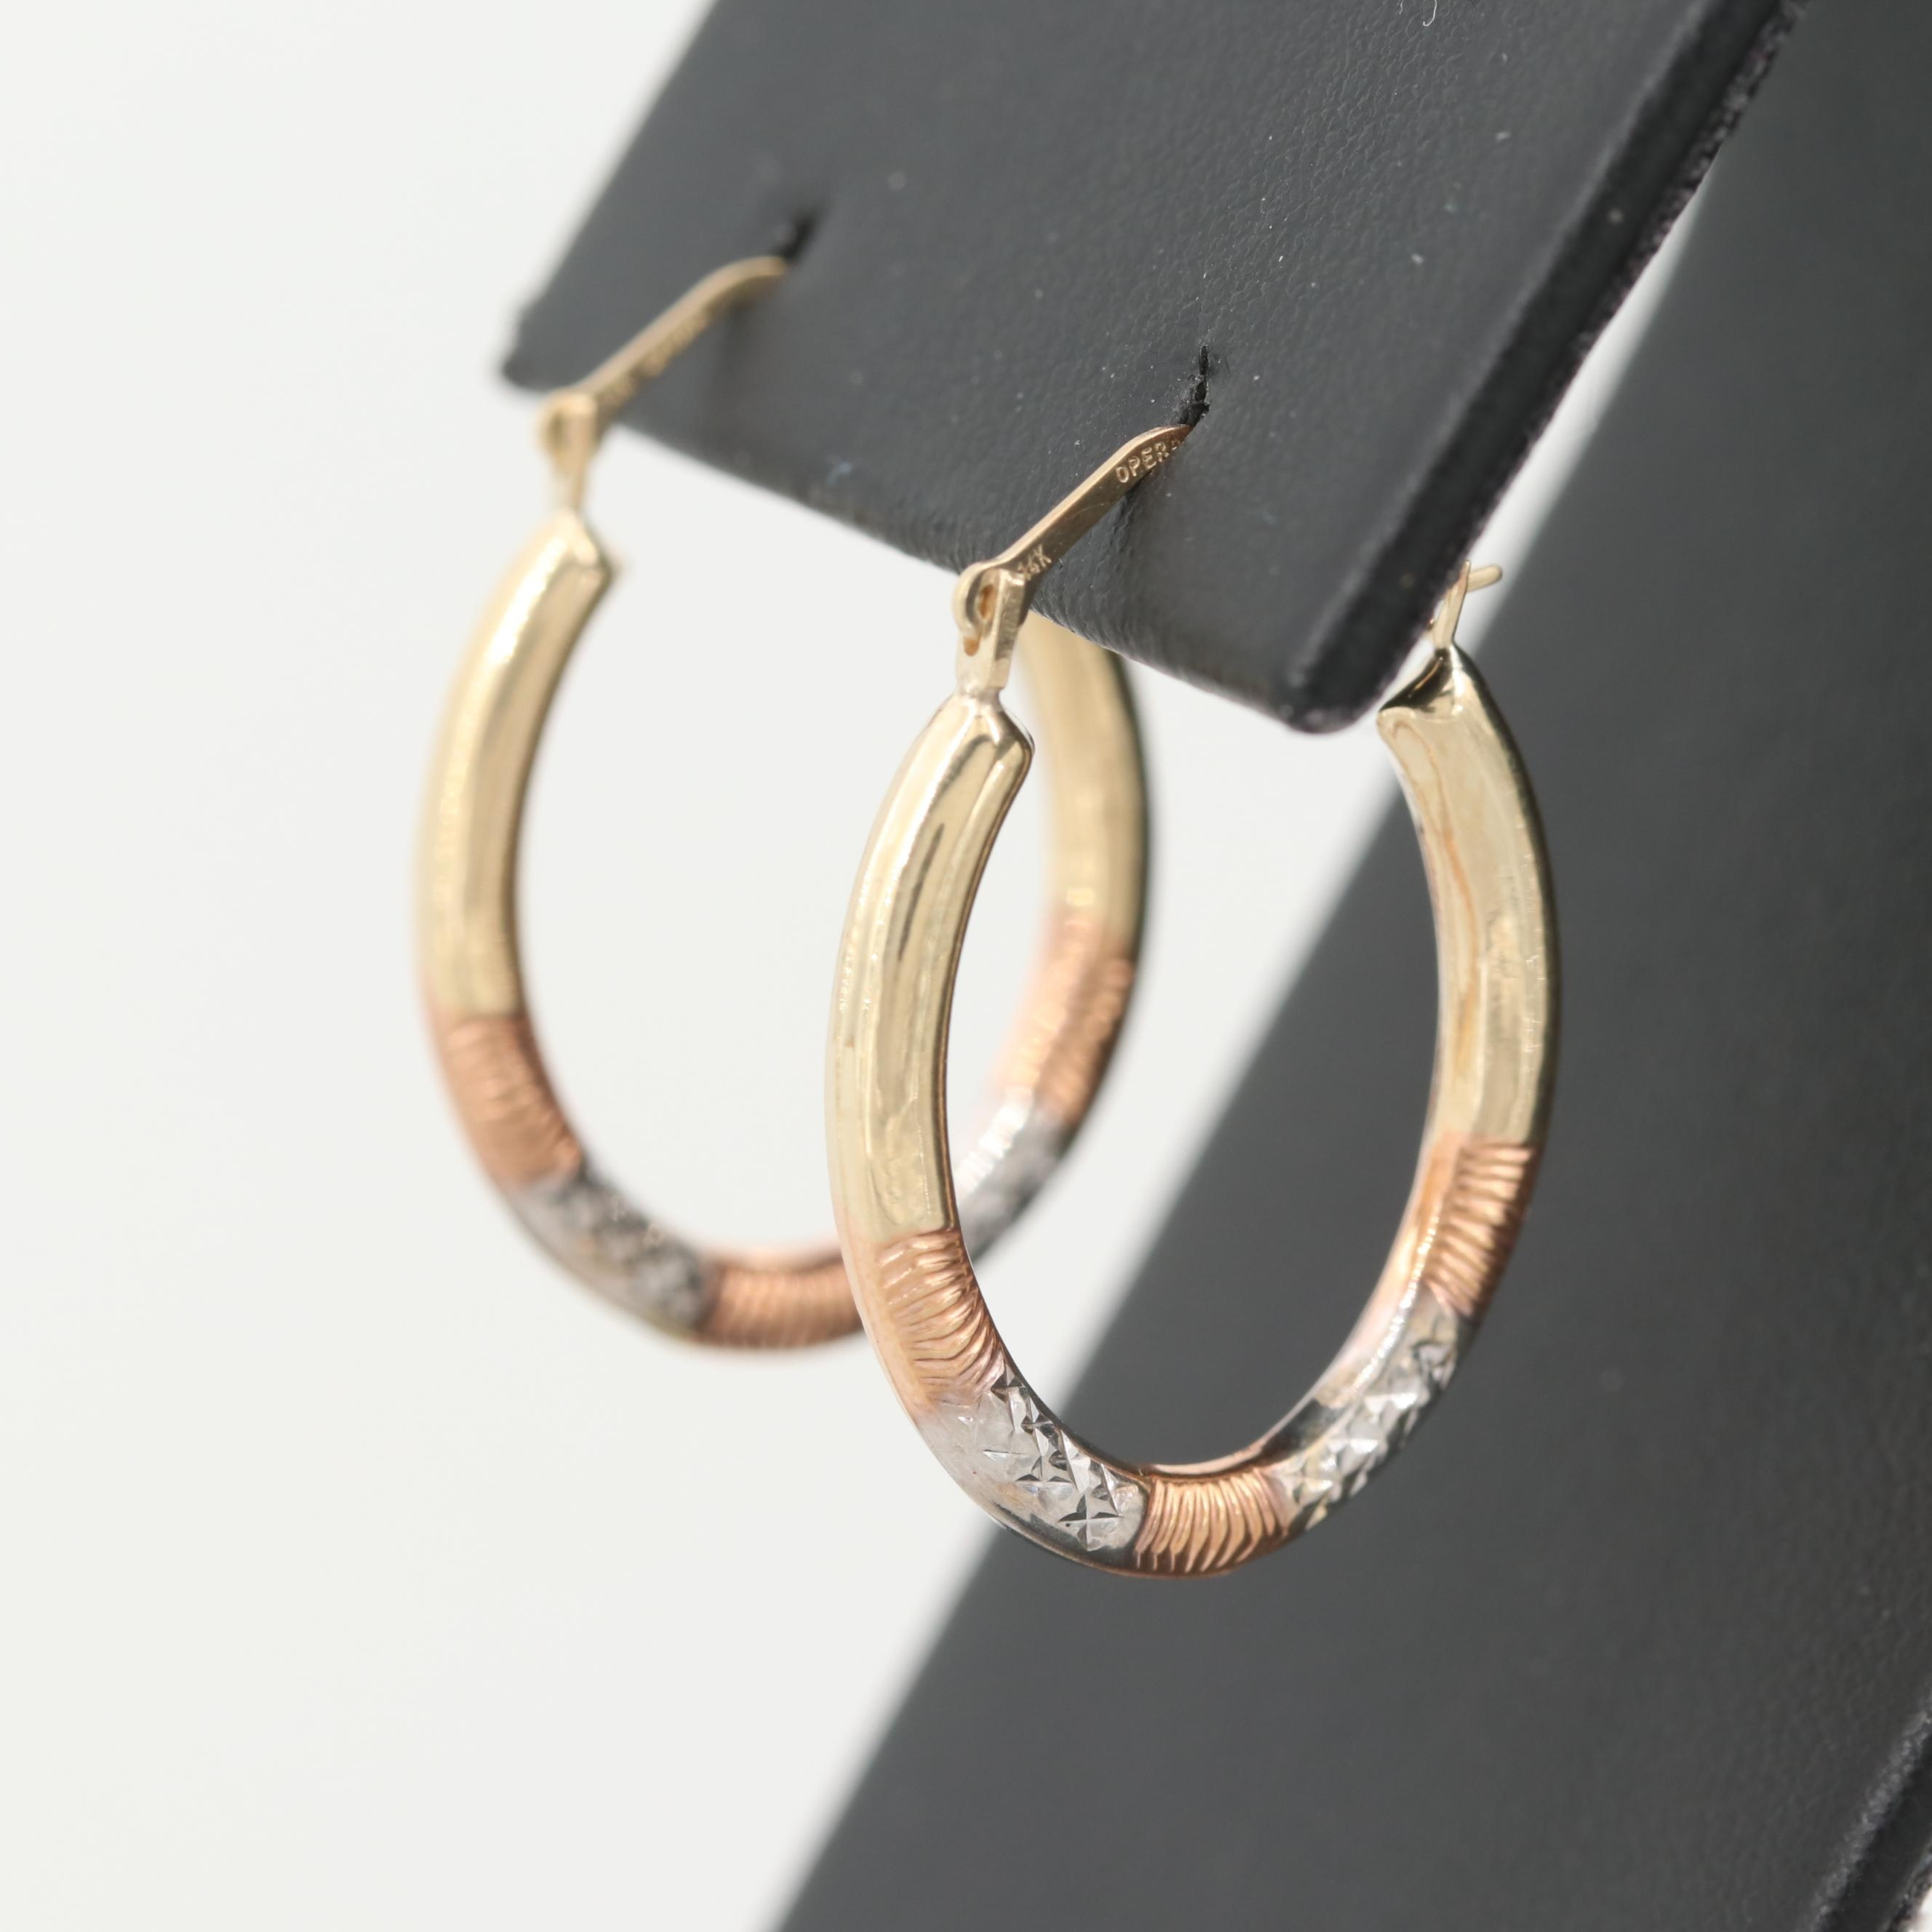 14K Yellow Gold Hoop Earrings with Rose and White Gold Textured Accents